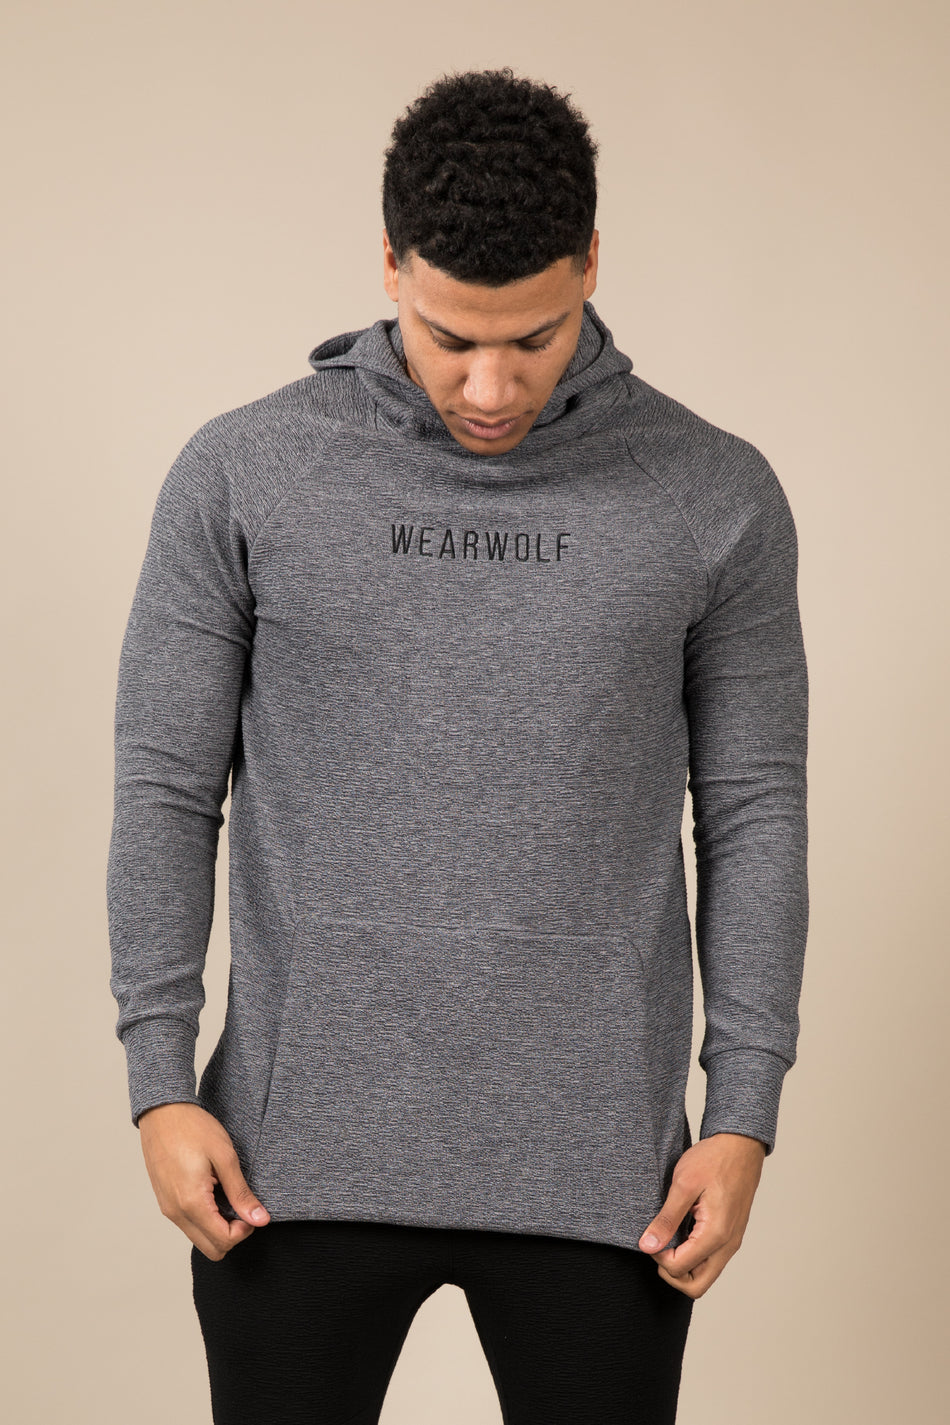 Winter Tracksuit Hoodie - Grey - WearWolf Clothing Ltd